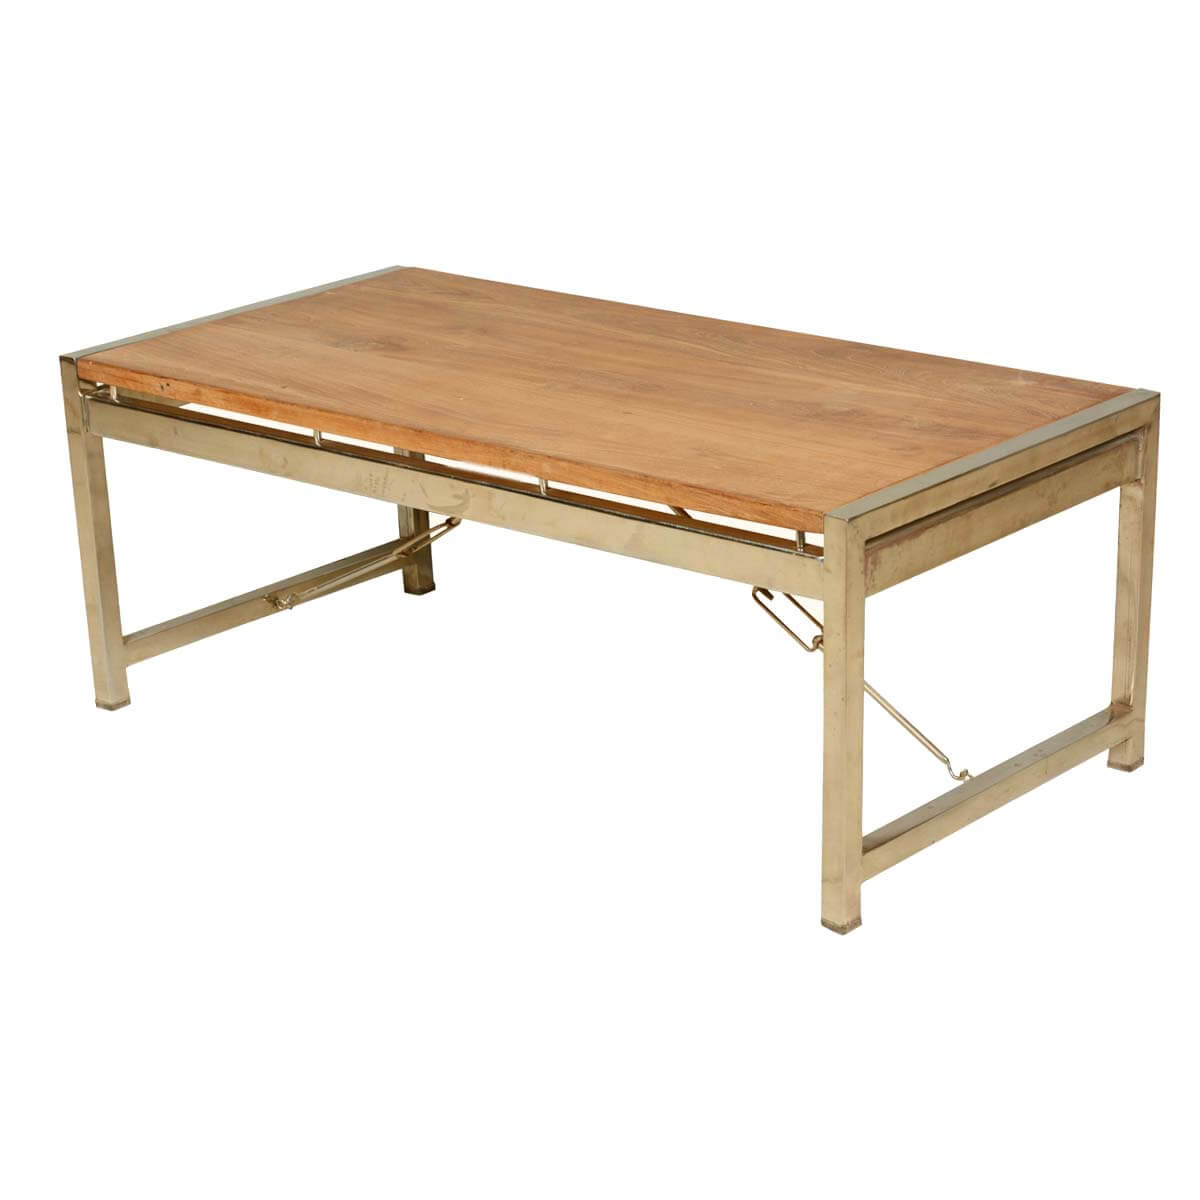 Modern industrial fusion solid wood iron rustic coffee table for Solid wood coffee table